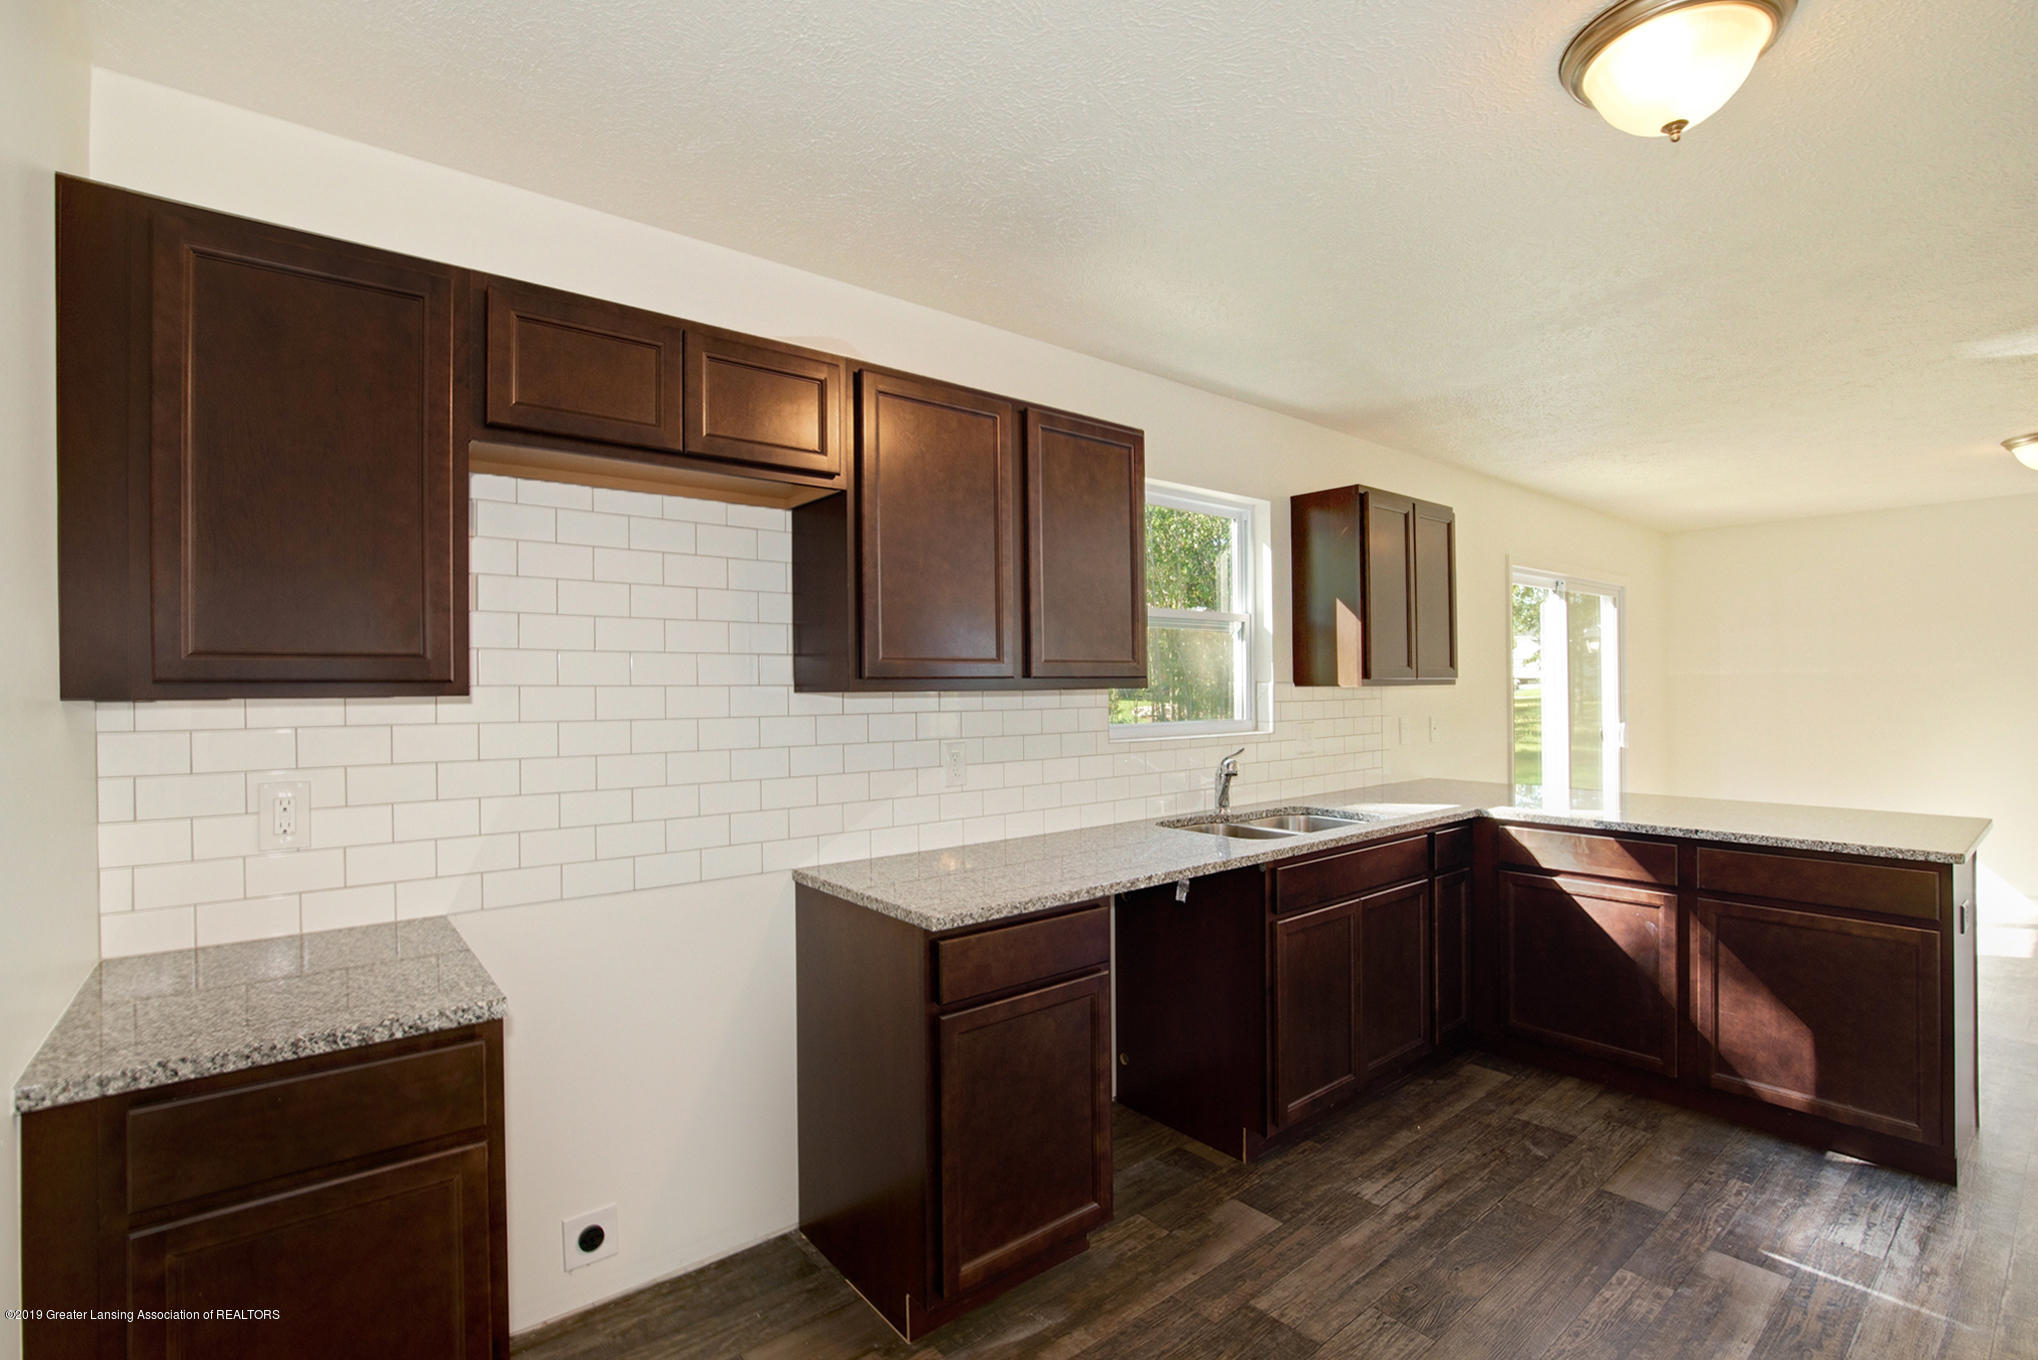 236 Noleigh - OAK079-i1810-Kitchen2 - 7